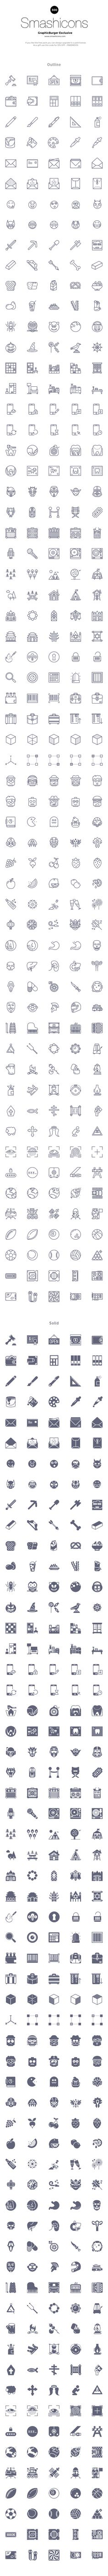 I'm glad to share with you another free set of Smashicons, this one including 300 pixel perfect icons in 4 styles...